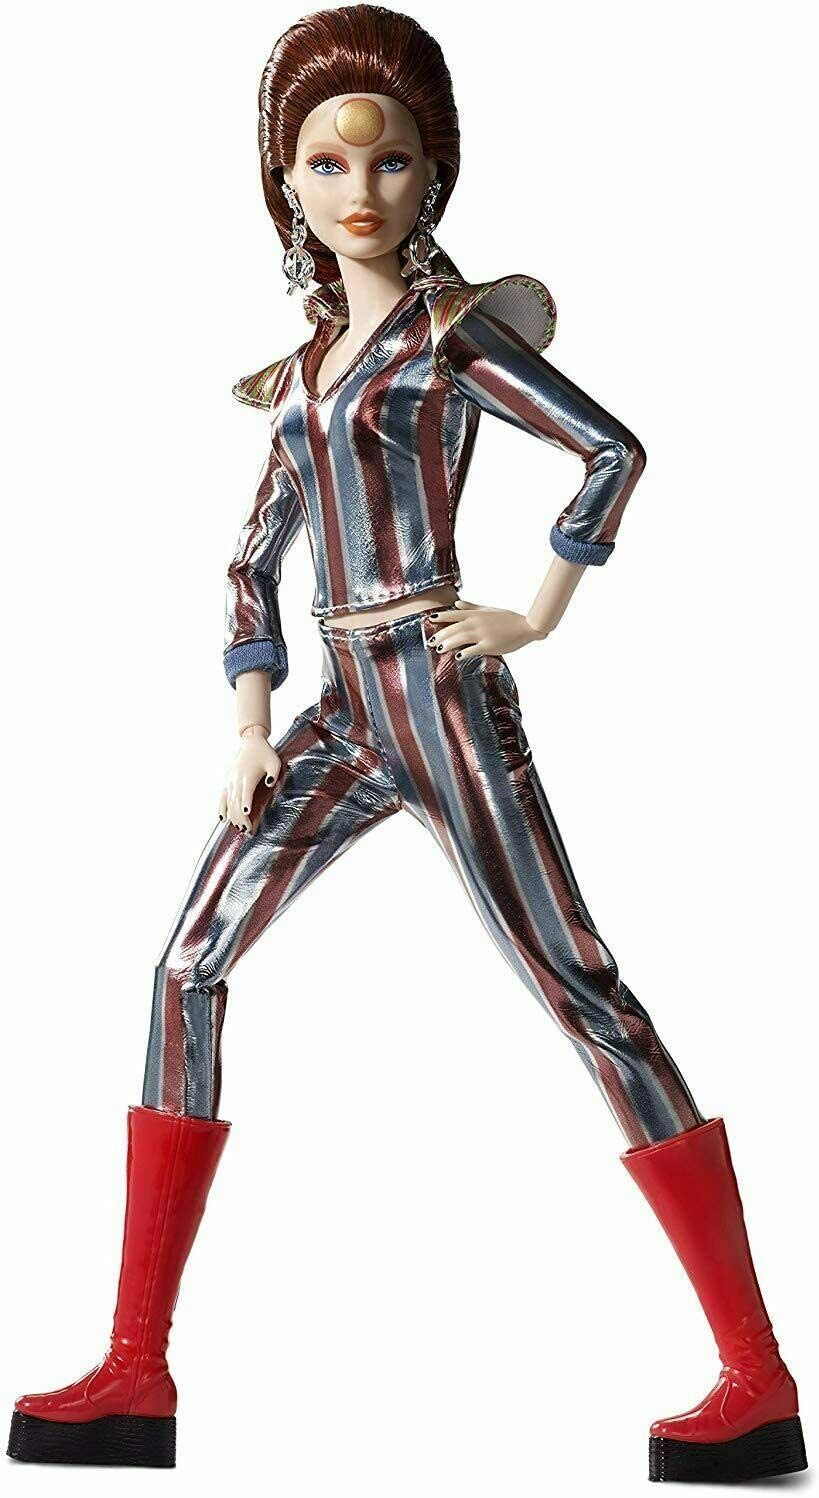 Barbie - Fx David Bowie Collector, Doll (Mattel FXD84) Dress El Suit Space - $307.83